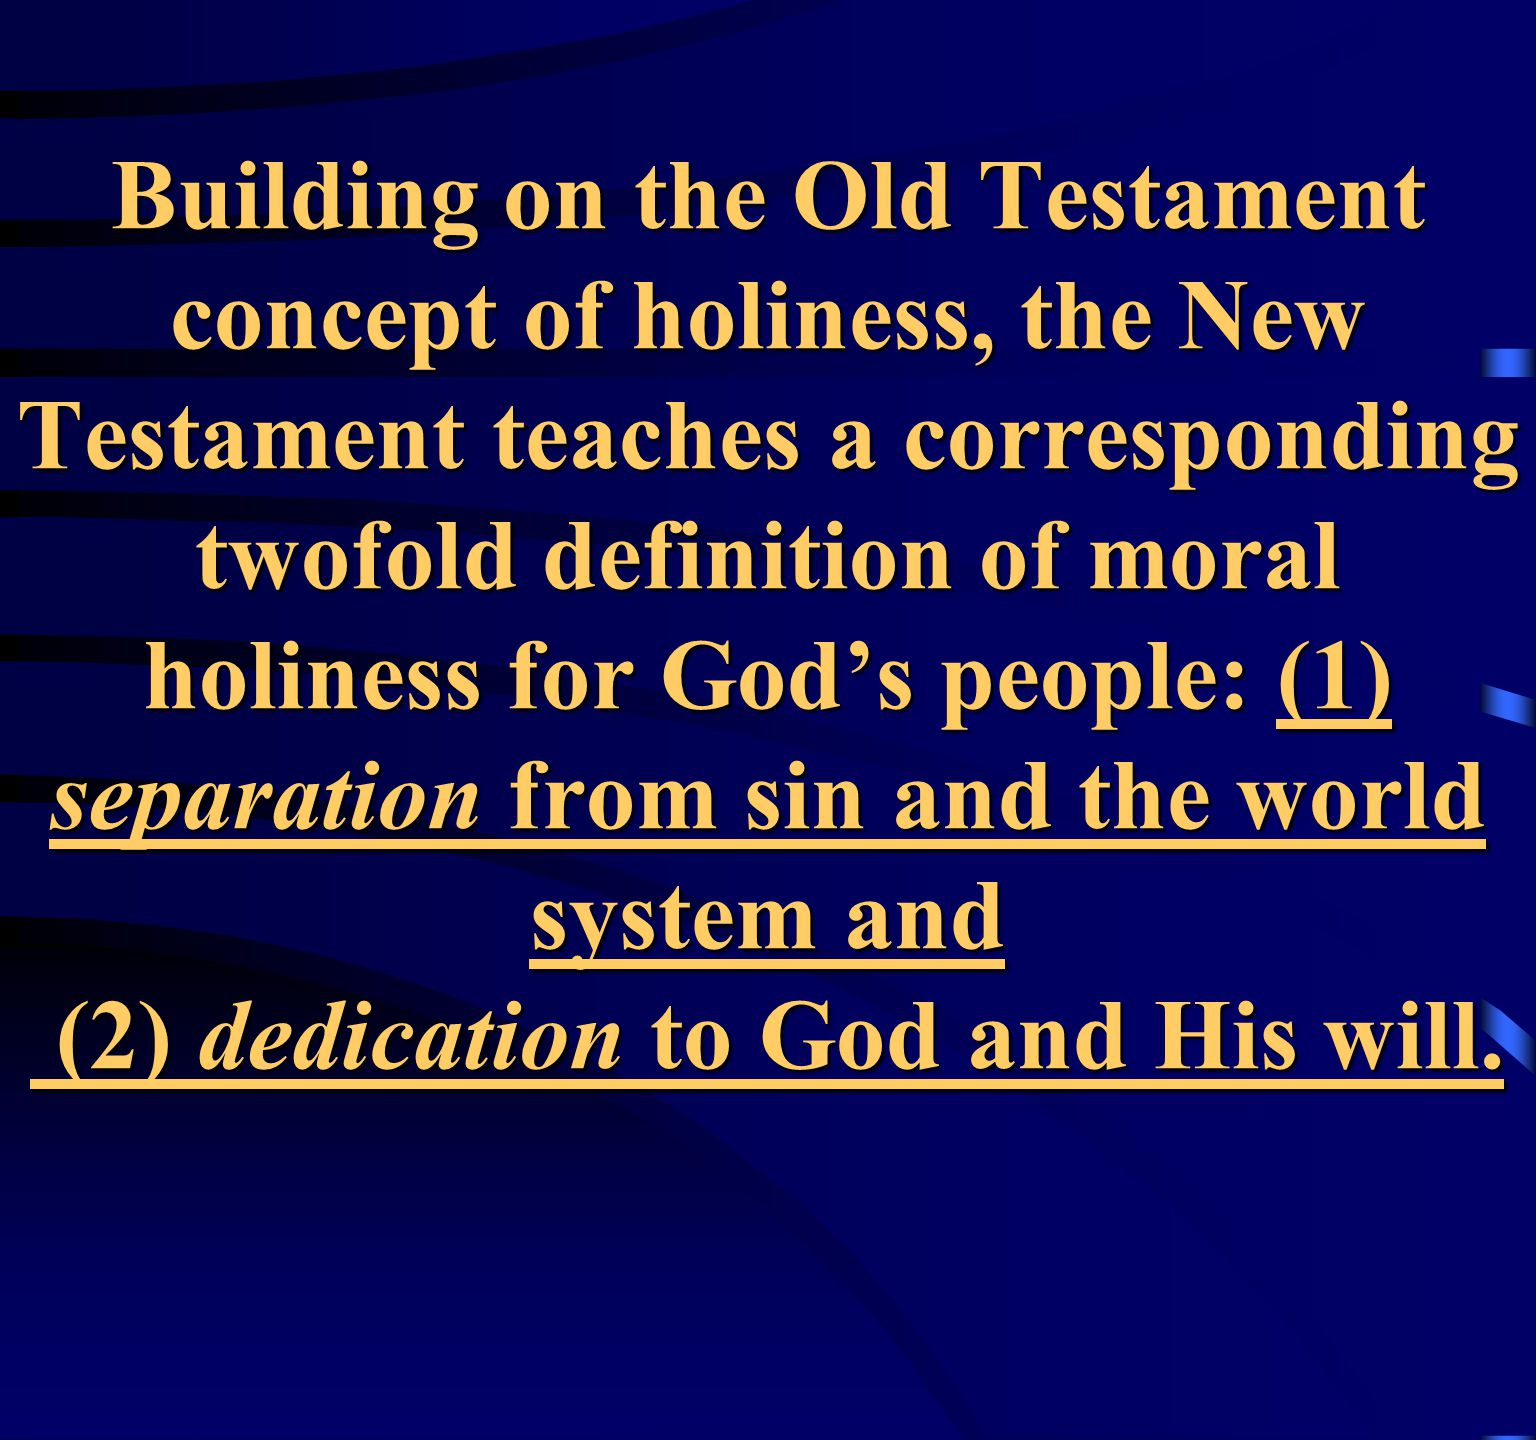 Building on the Old Testament concept of holiness, the New Testament teaches a corresponding twofold definition of moral holiness for God's people: (1) separation from sin and the world system and (2) dedication to God and His will.